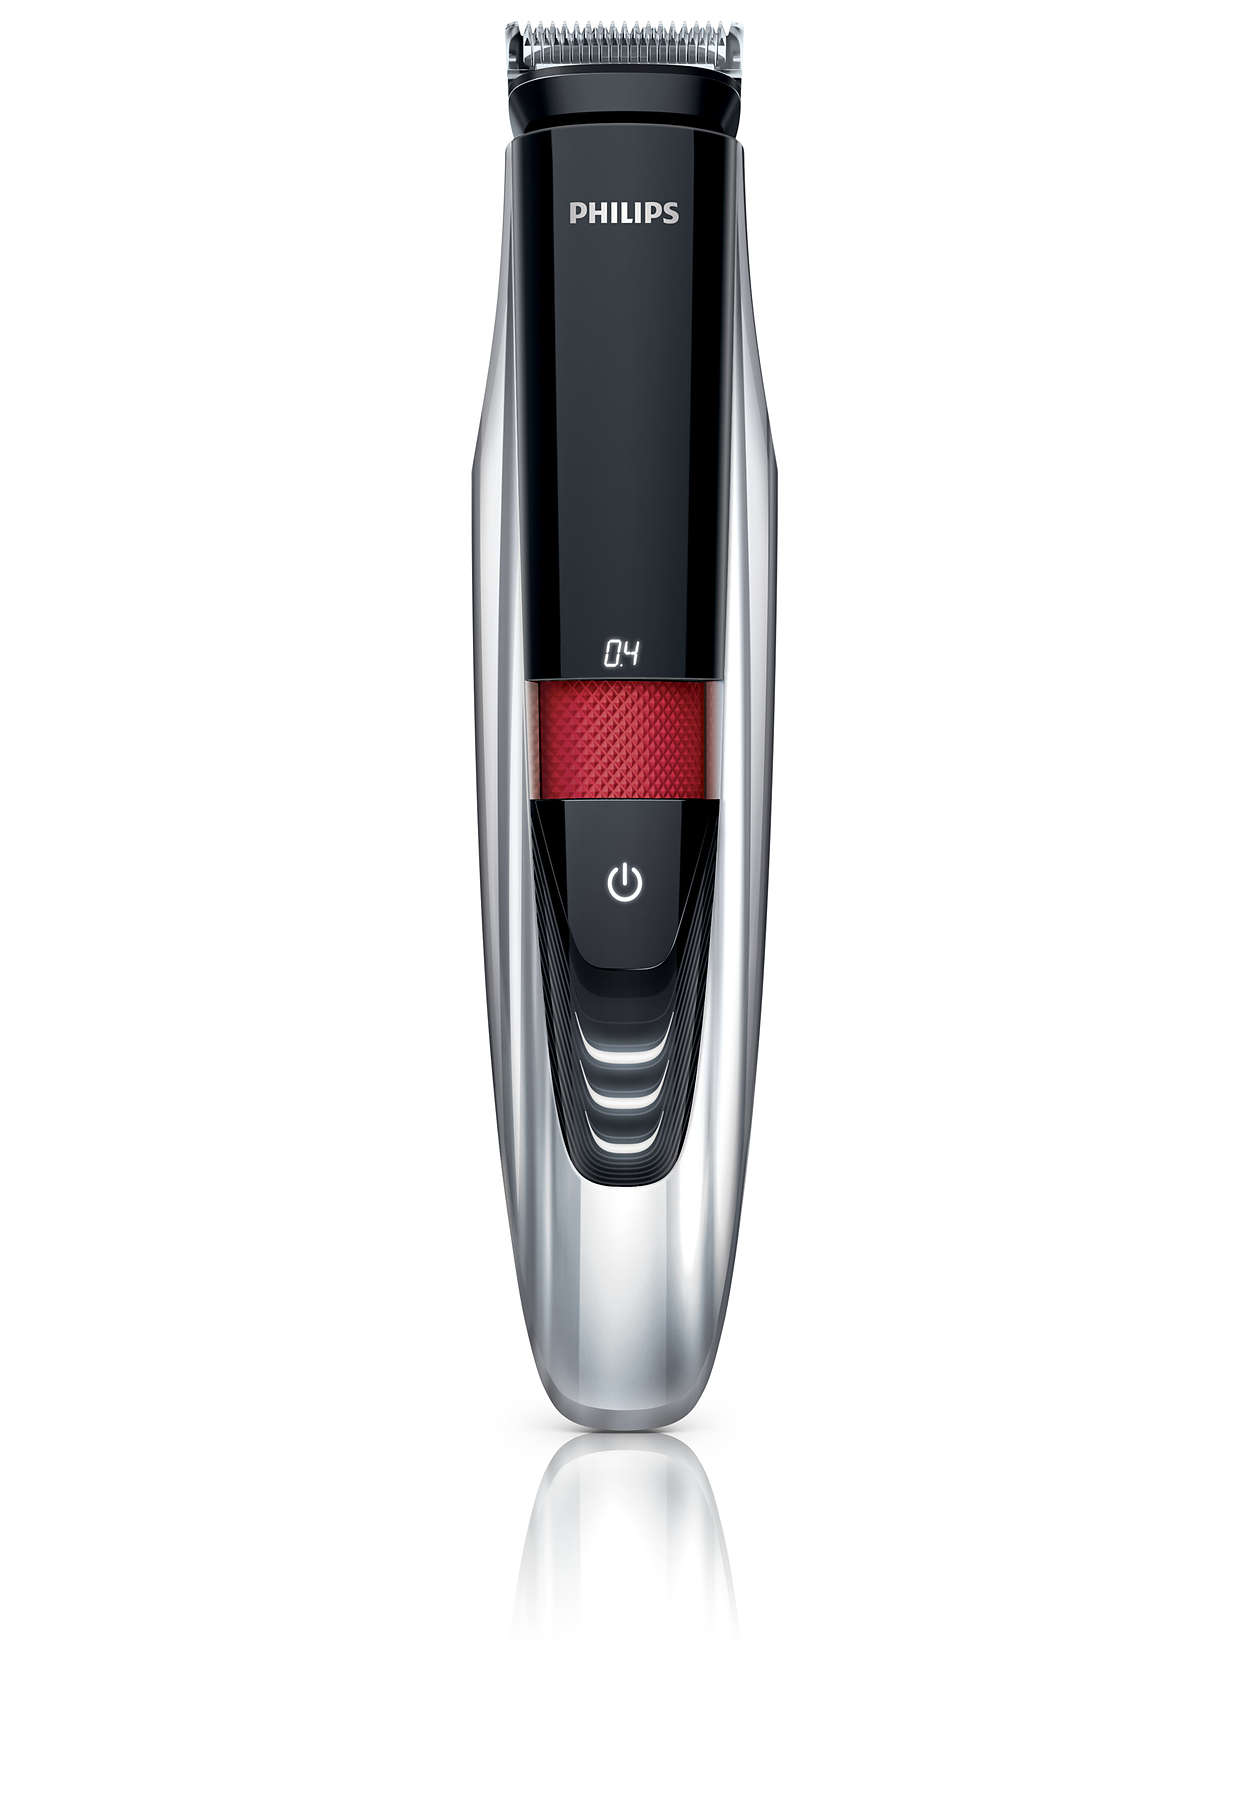 beardtrimmer series 9000 waterproof beard trimmer bt9280 33 philips. Black Bedroom Furniture Sets. Home Design Ideas